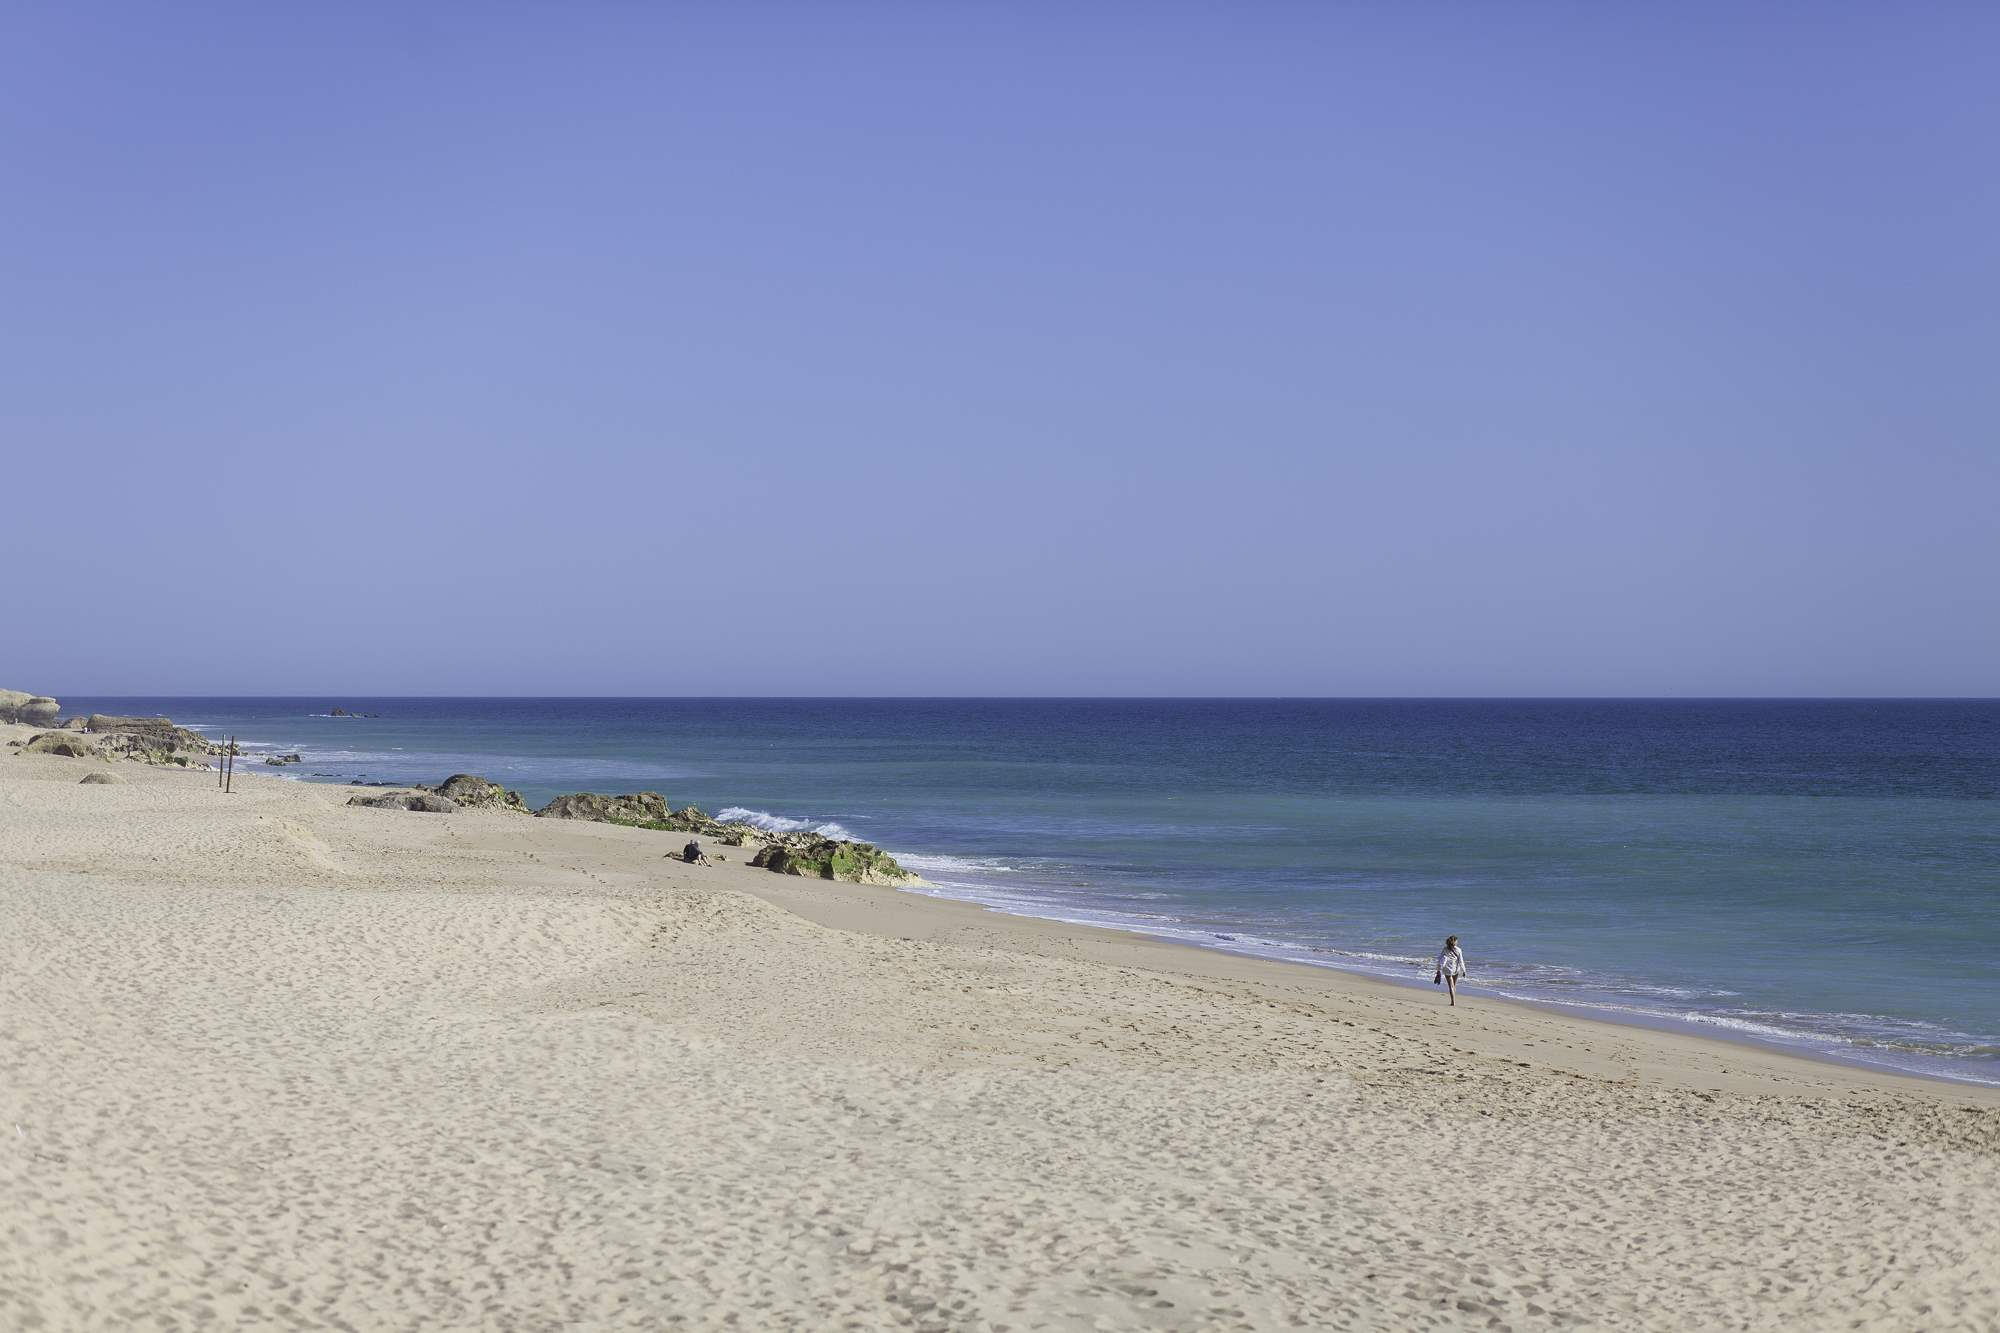 Vidamar Hotel Ocean View Room, HB, Family Room, 1 bedroom hotel in Vidamar Resort, Algarve Photo #19